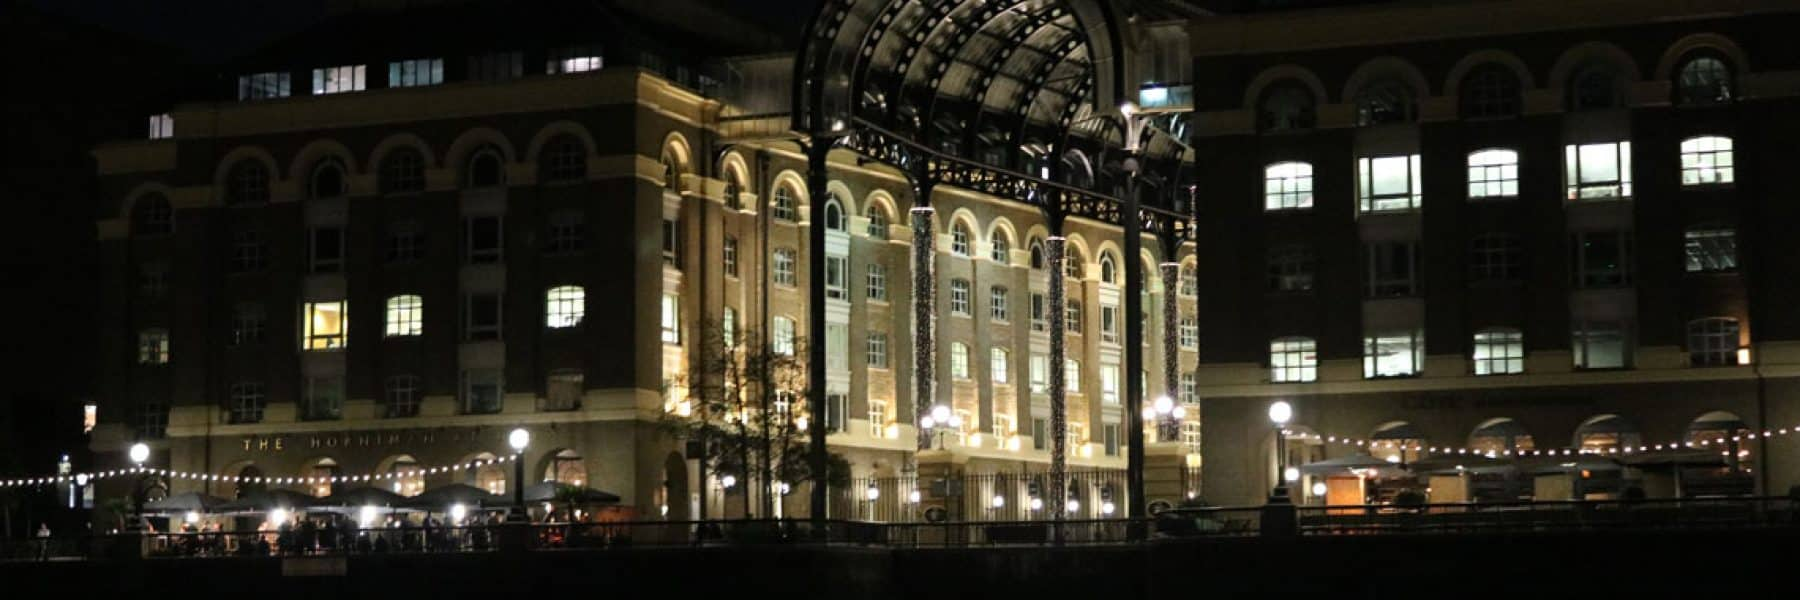 Hay's Galleria, London Bridge City